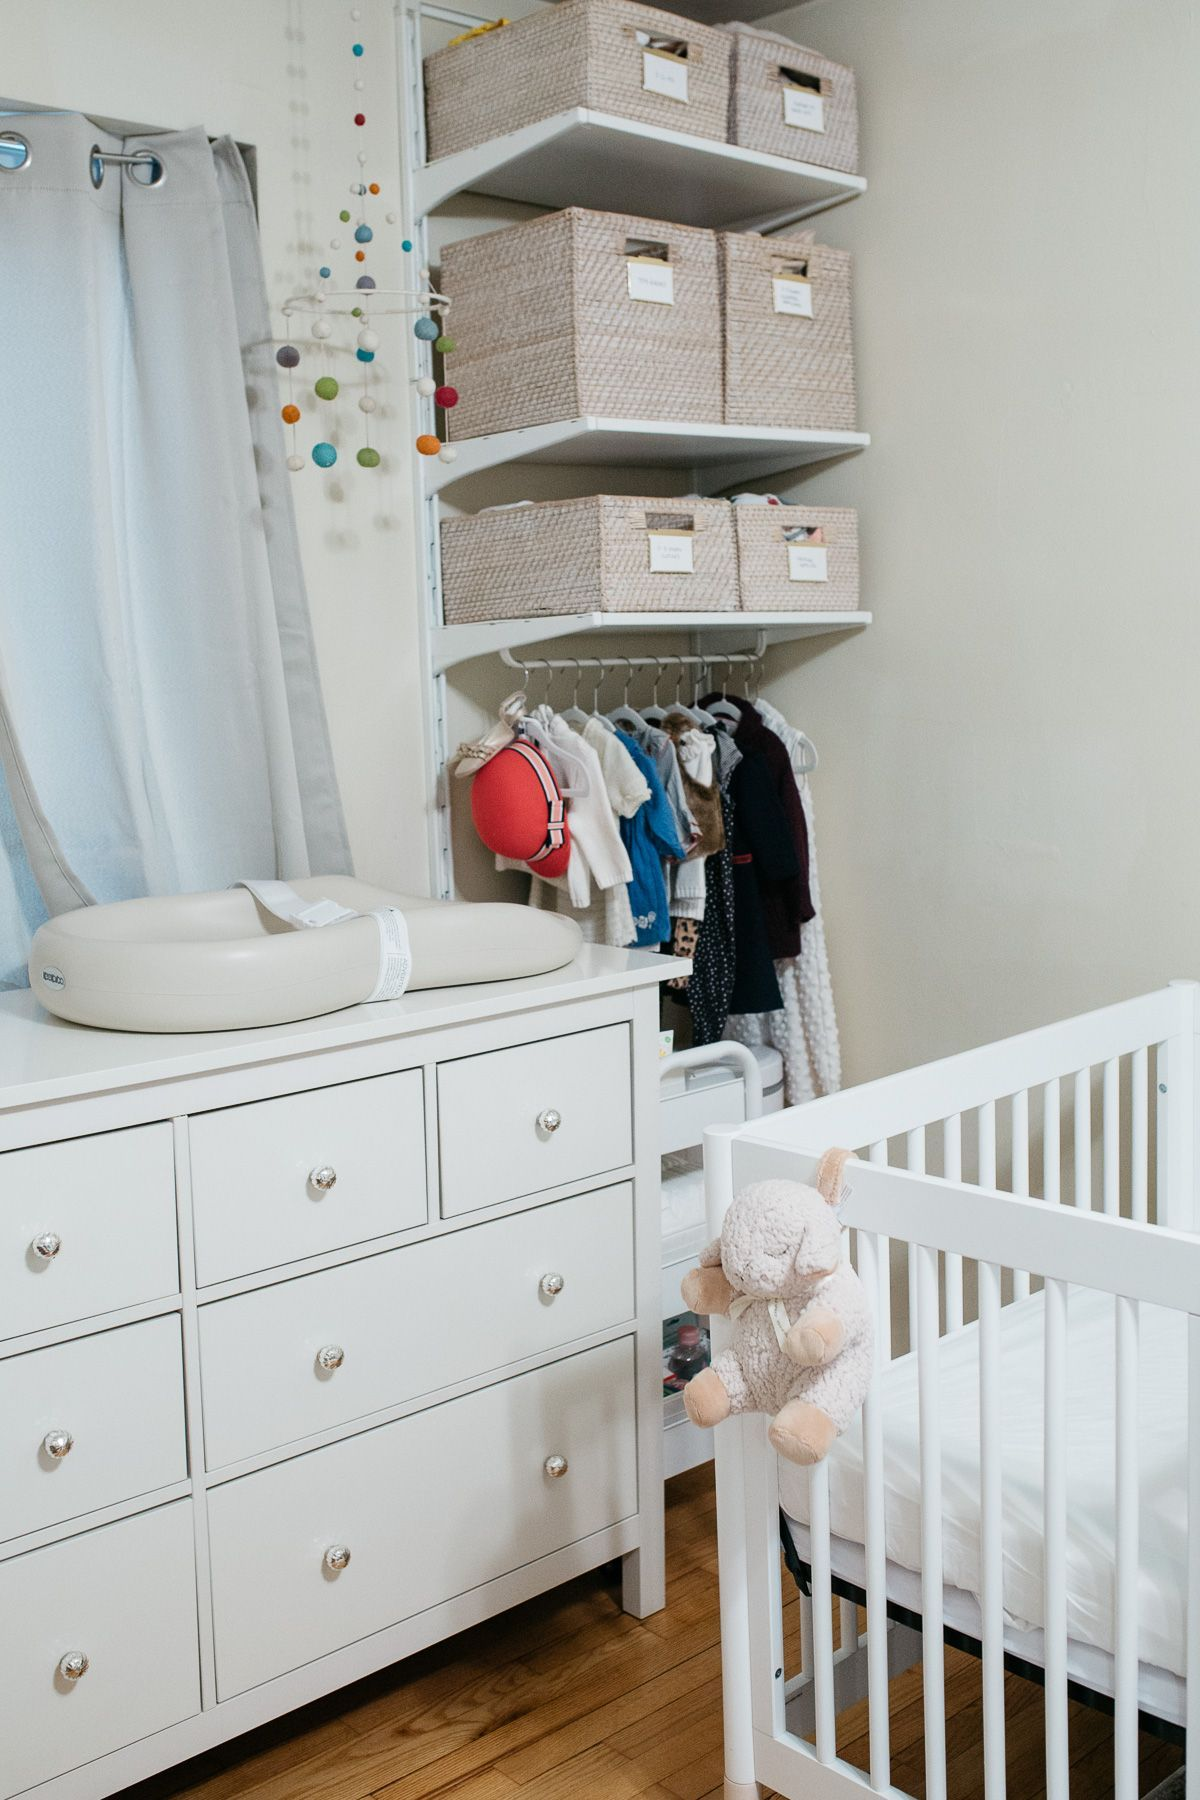 Pin On Baby Organization Ideas